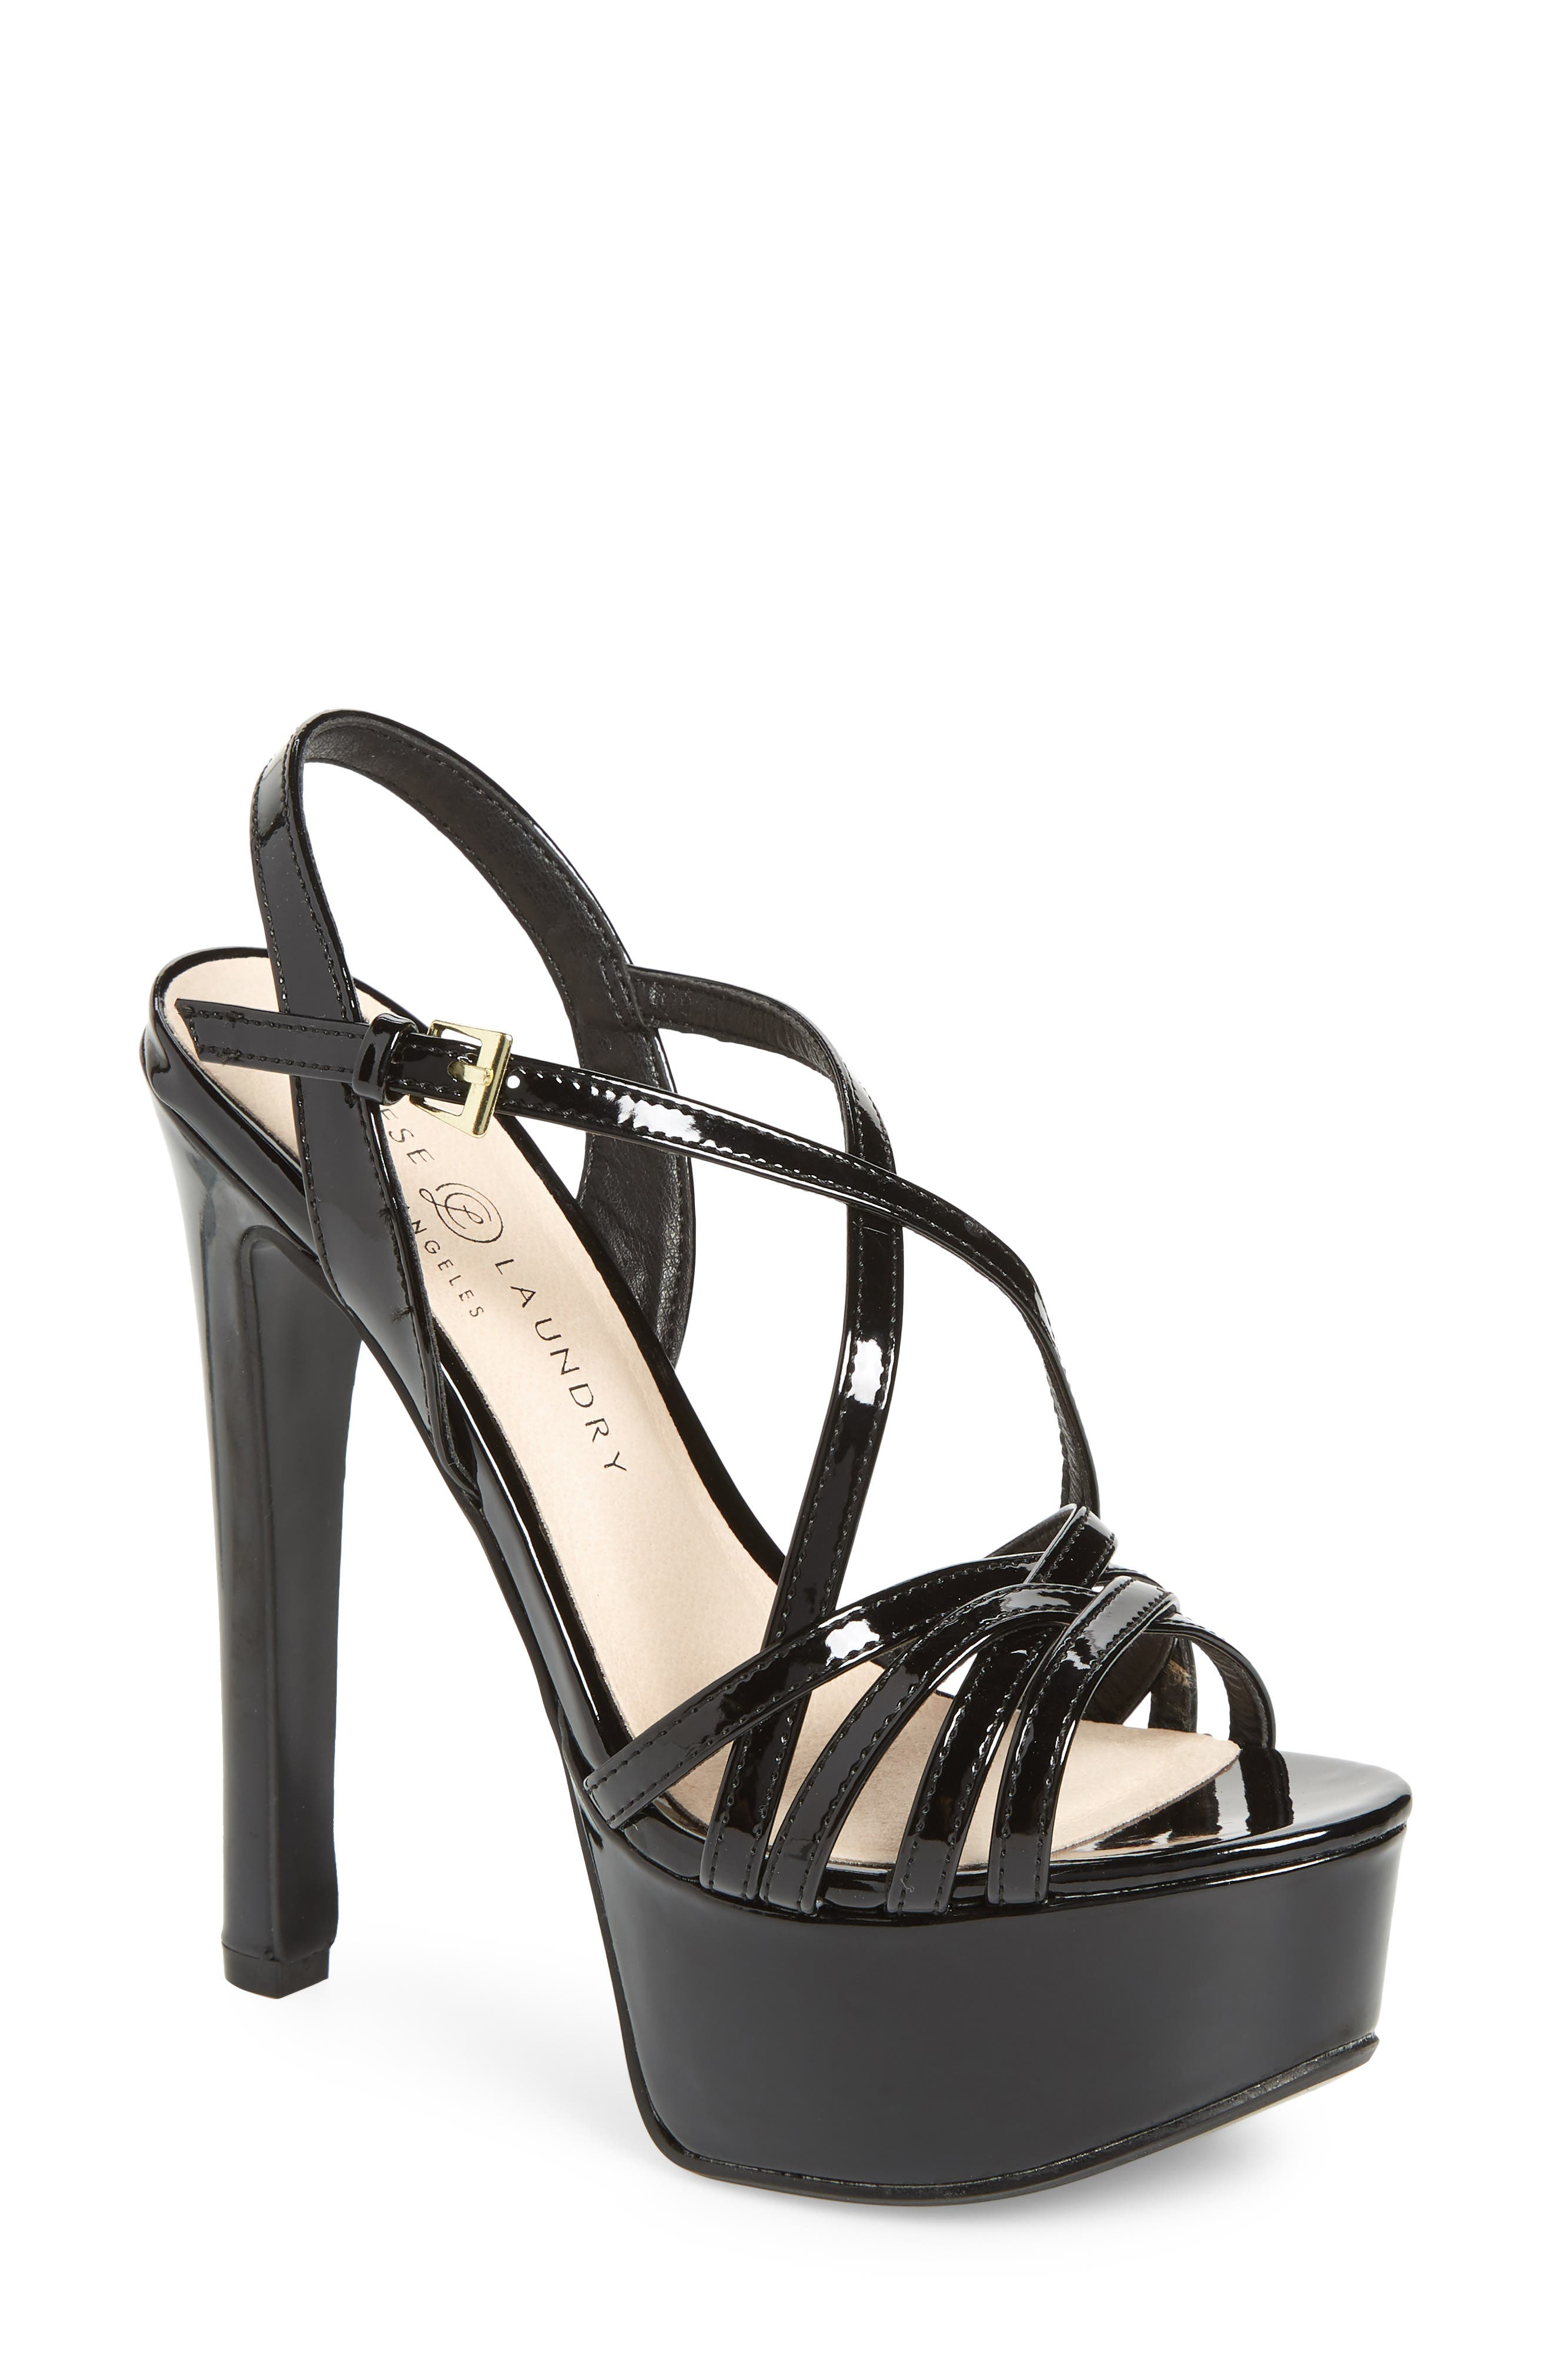 CHINESE LAUNDRY Teaser2 Platform Sandal, Main, color, BLACK PATENT